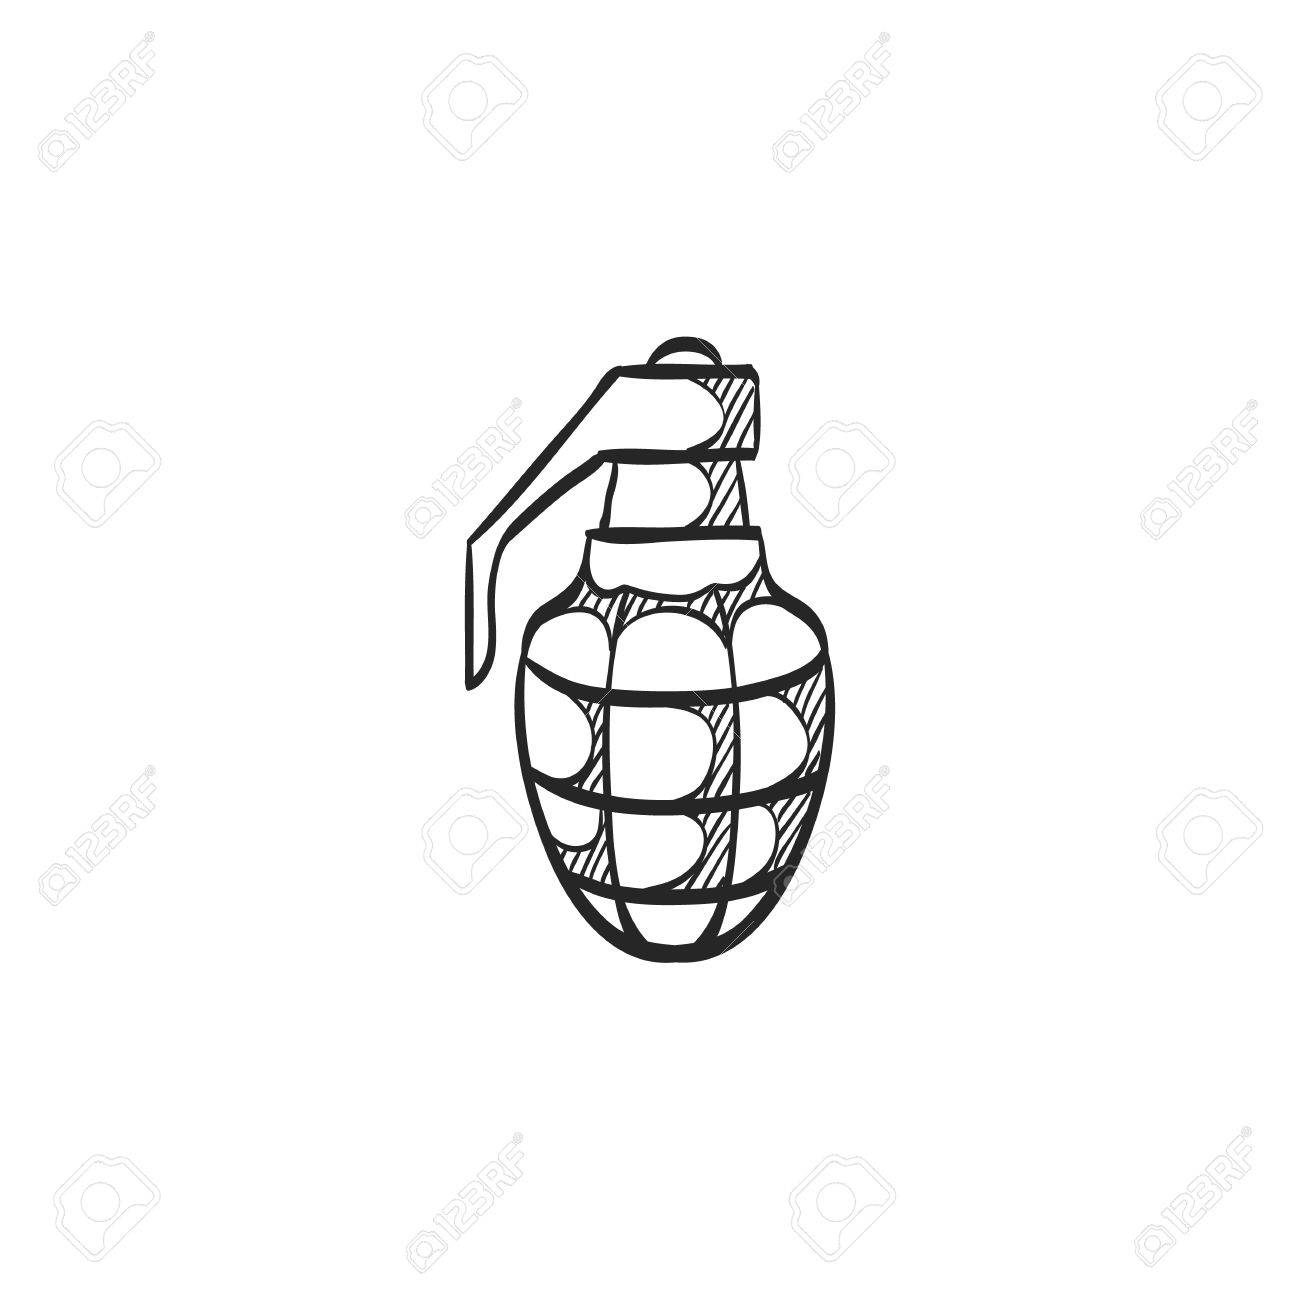 grenade icon in doodle sketch lines military army explosive rh 123rf com WW2 Hand Grenades Hand to Hand Combat Weapons